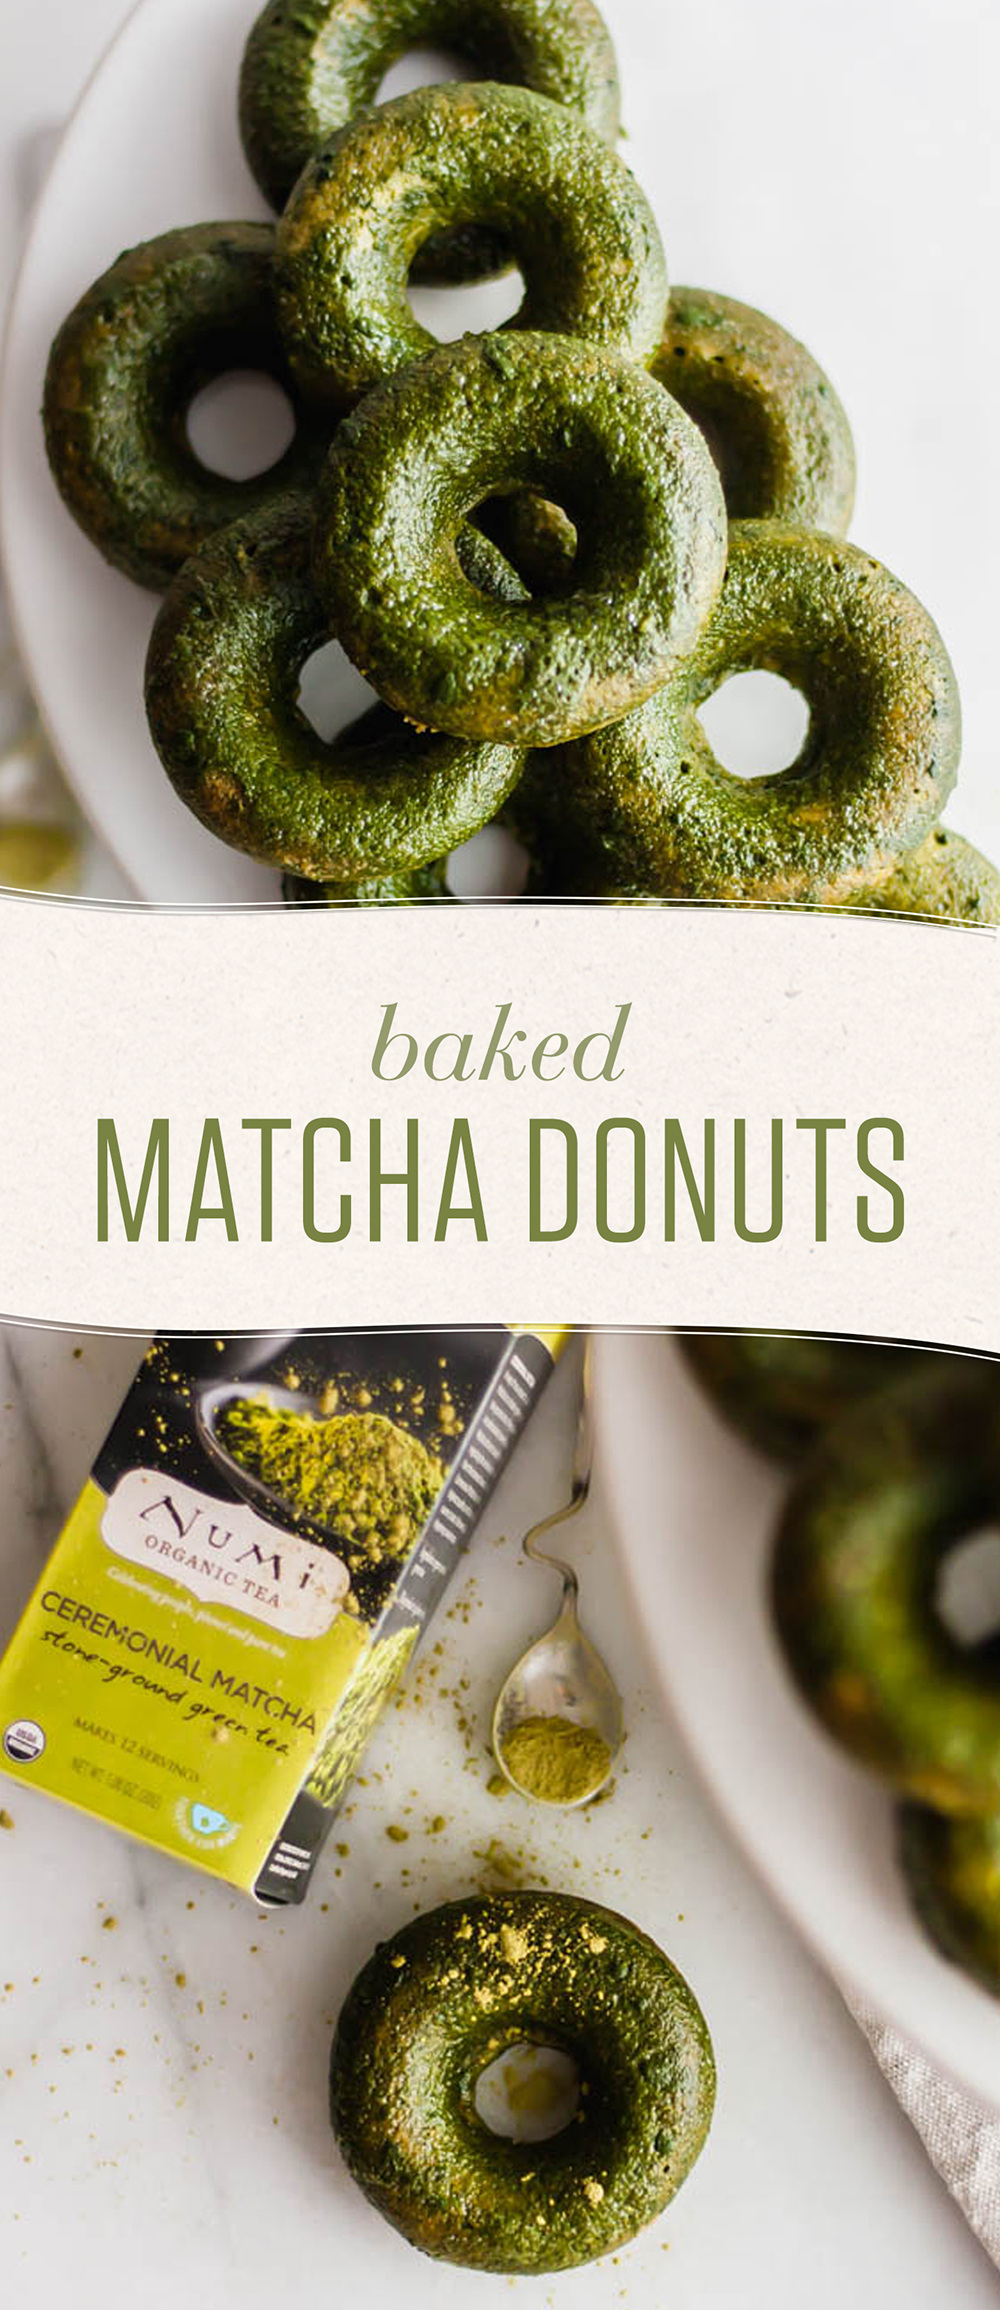 If you're not a matchaholic yet, you will be after trying these baked matcha donuts. Green tea is a healthful addition to your favorite treat!